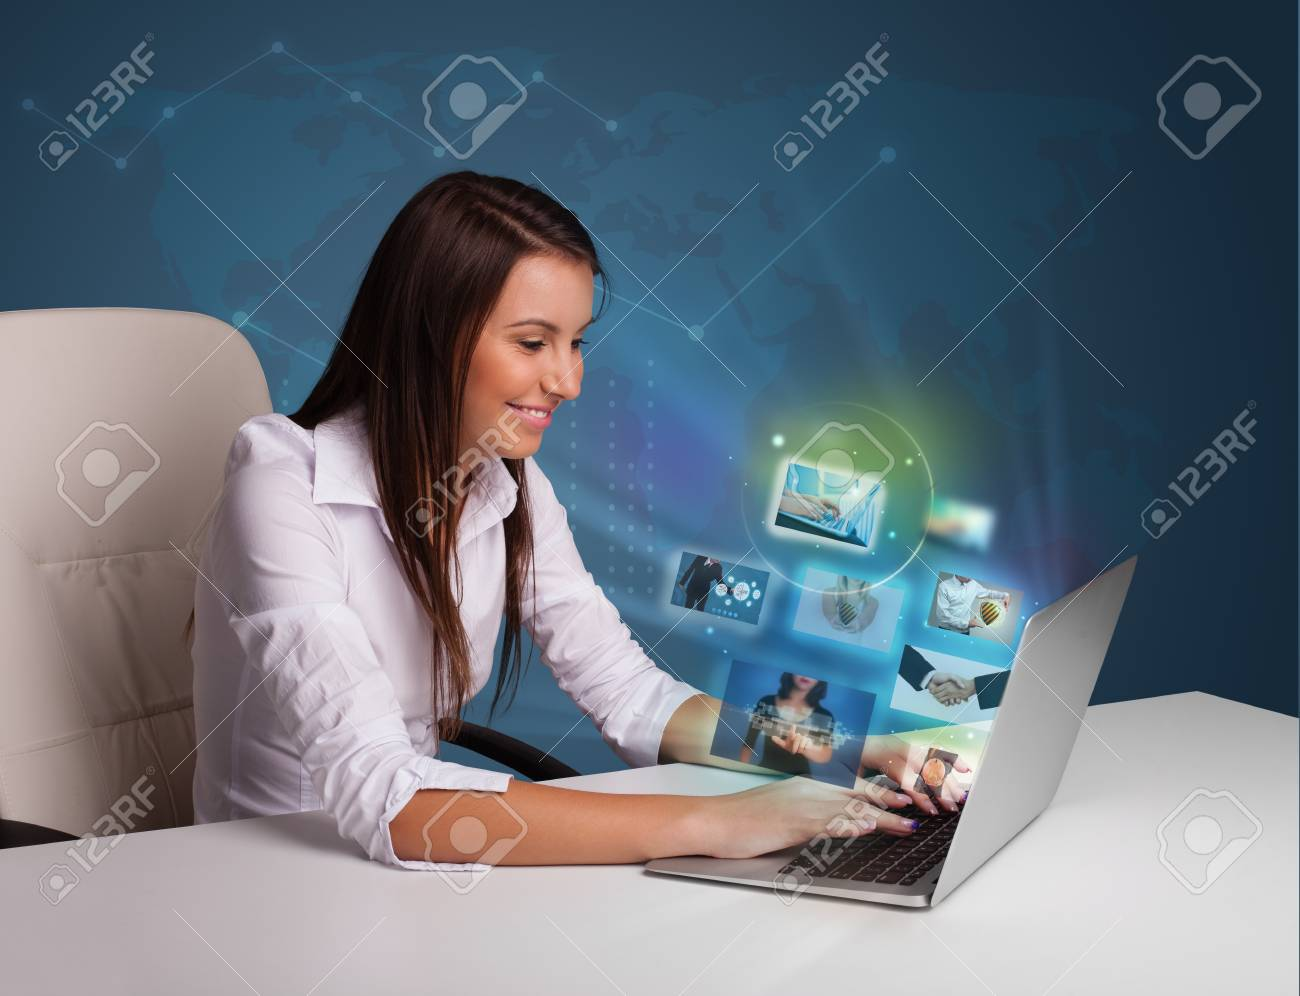 Beautiful young girl sitting at desk and watching her photo gallery on laptop Stock Photo - 17340066